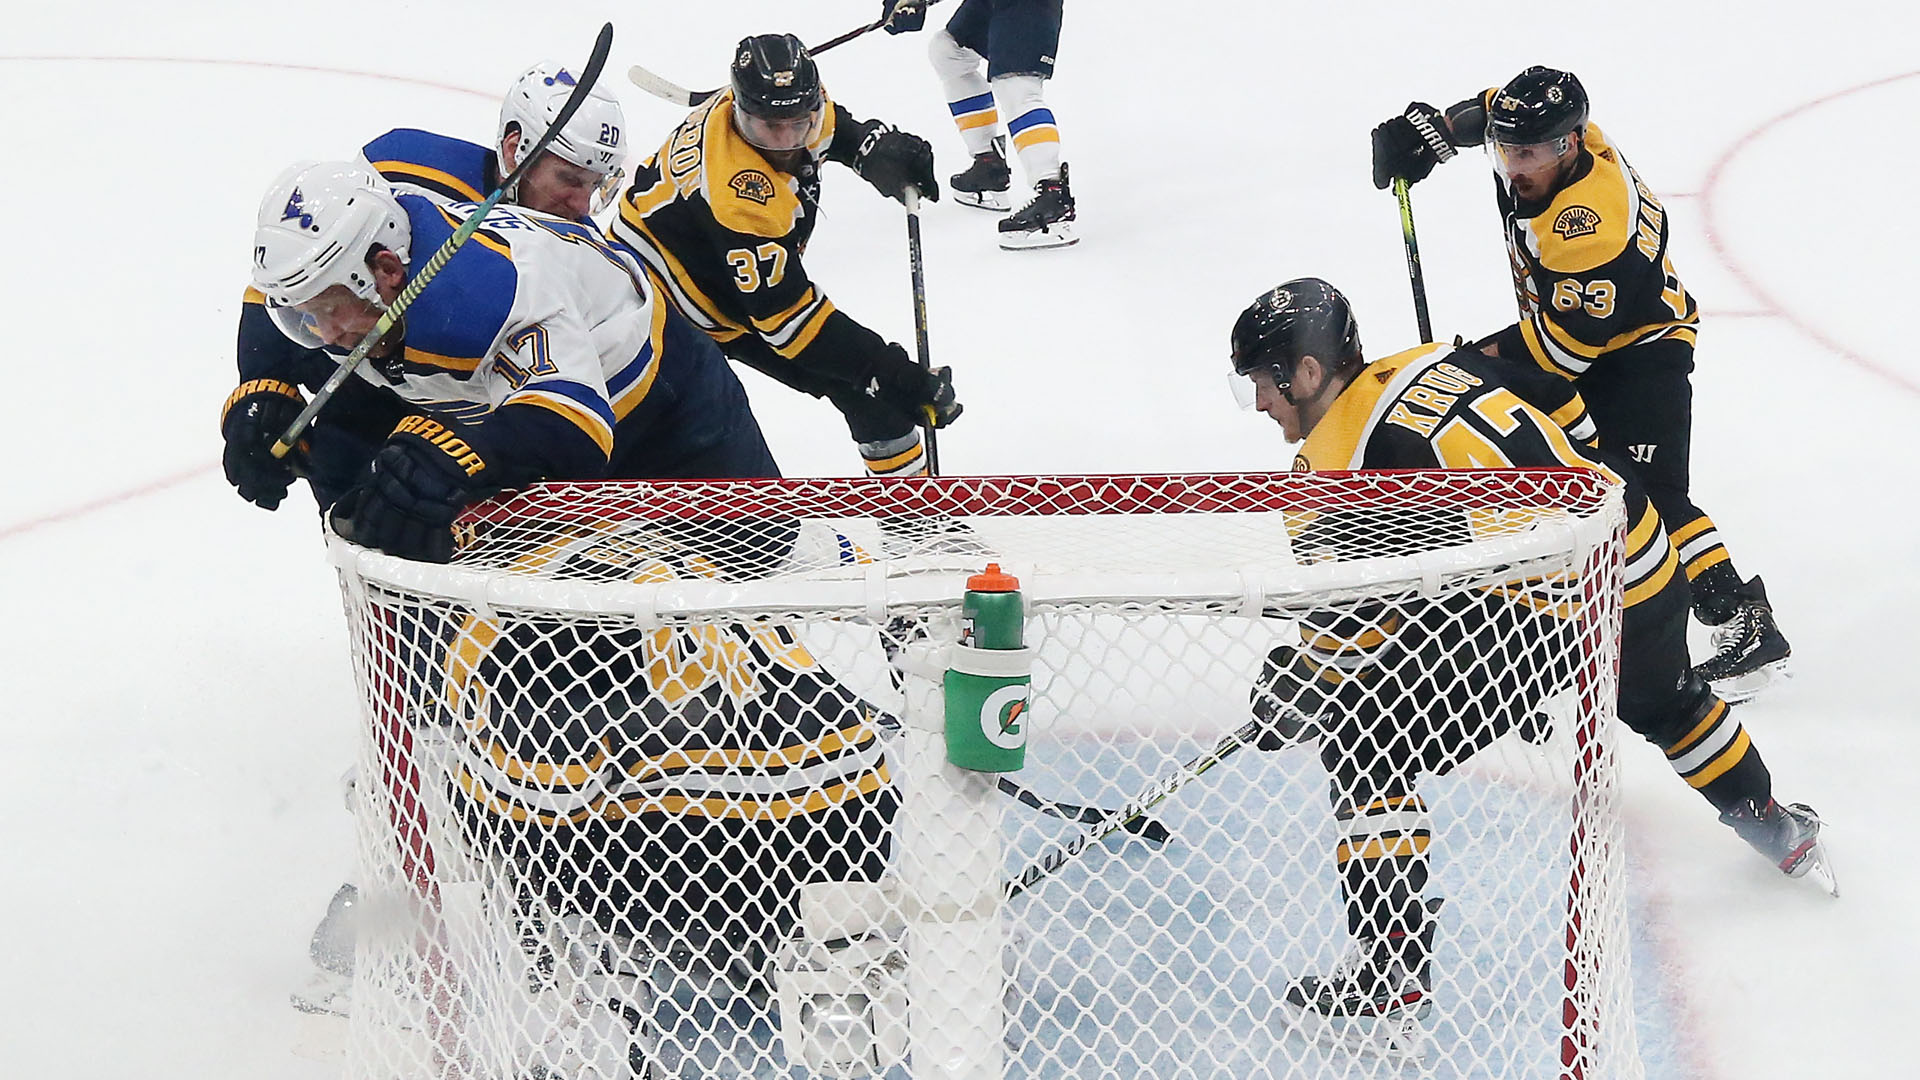 Stanley Cup Final 2019: Three takeaways from Blues' Game 2 win over Bruins